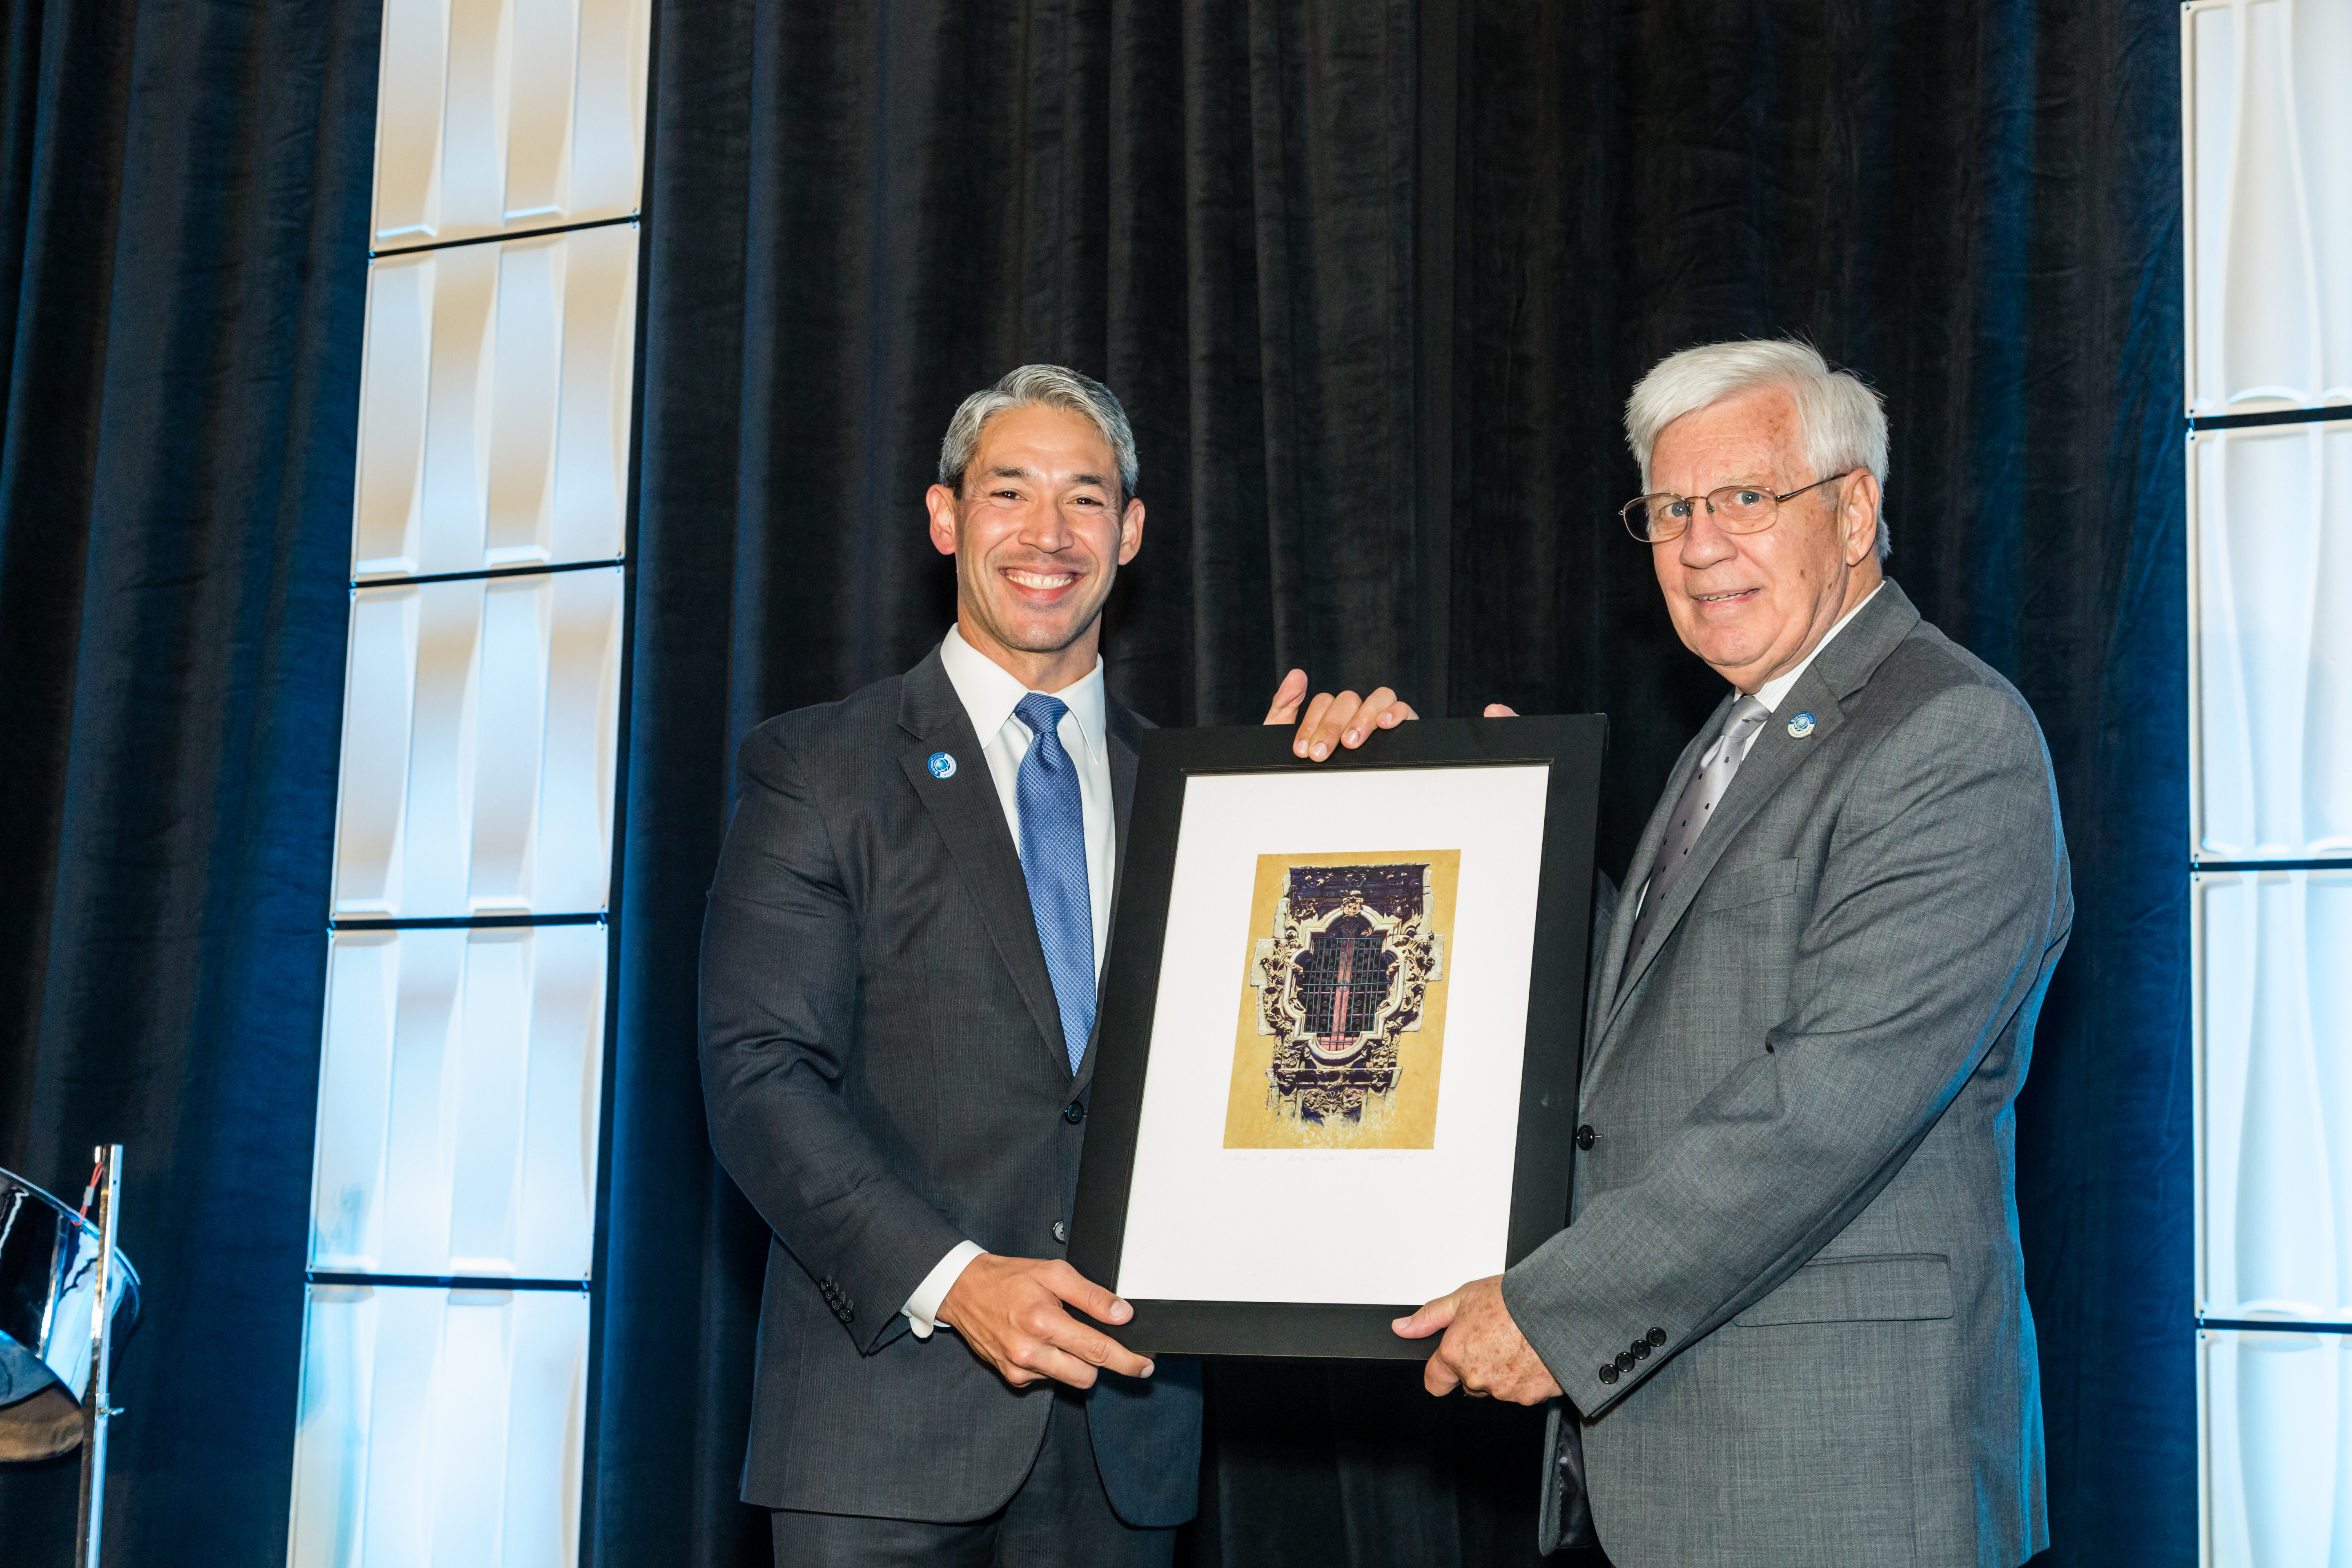 Ron Nirenberg Gives Special Gift to Tim Quigley for Service